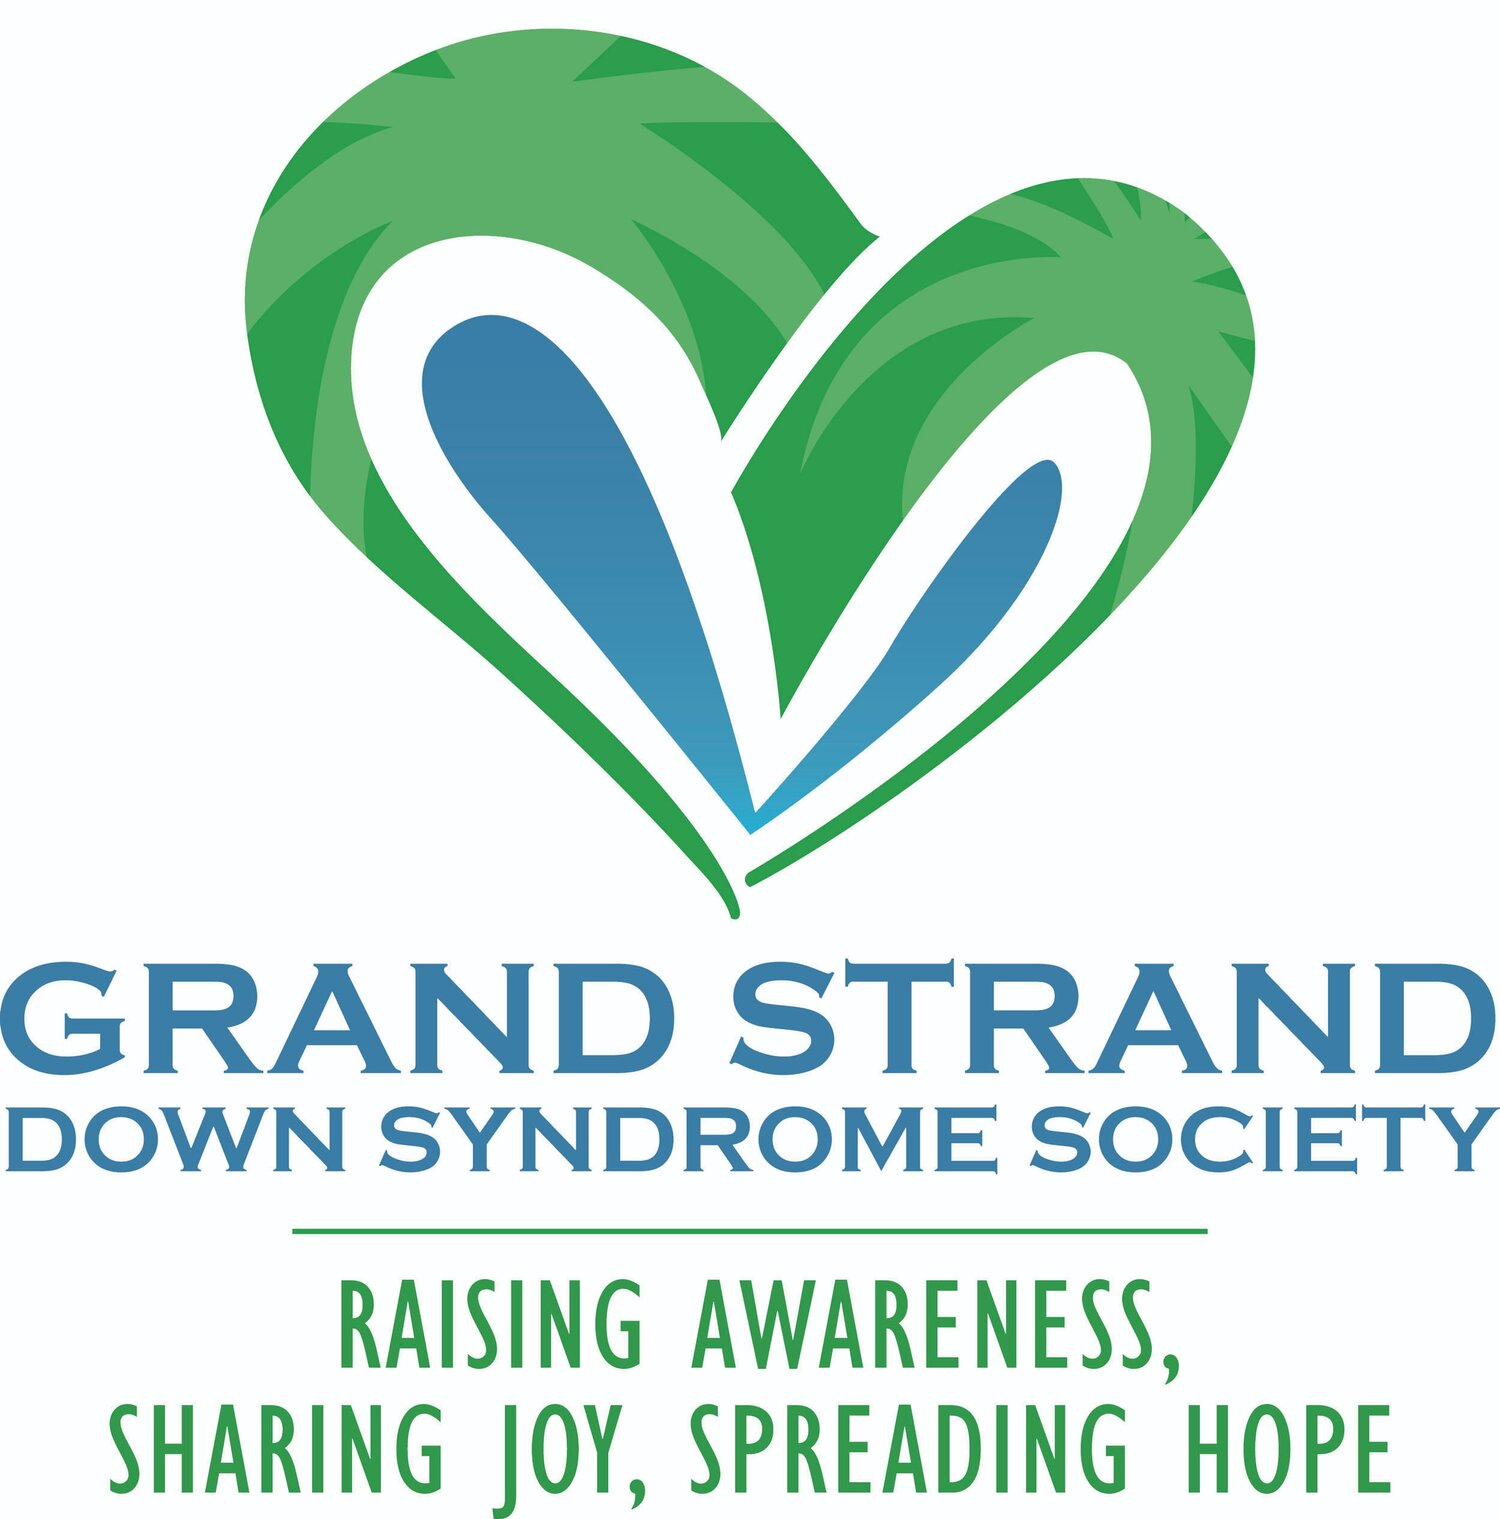 Grand Strand Down Syndrome Society